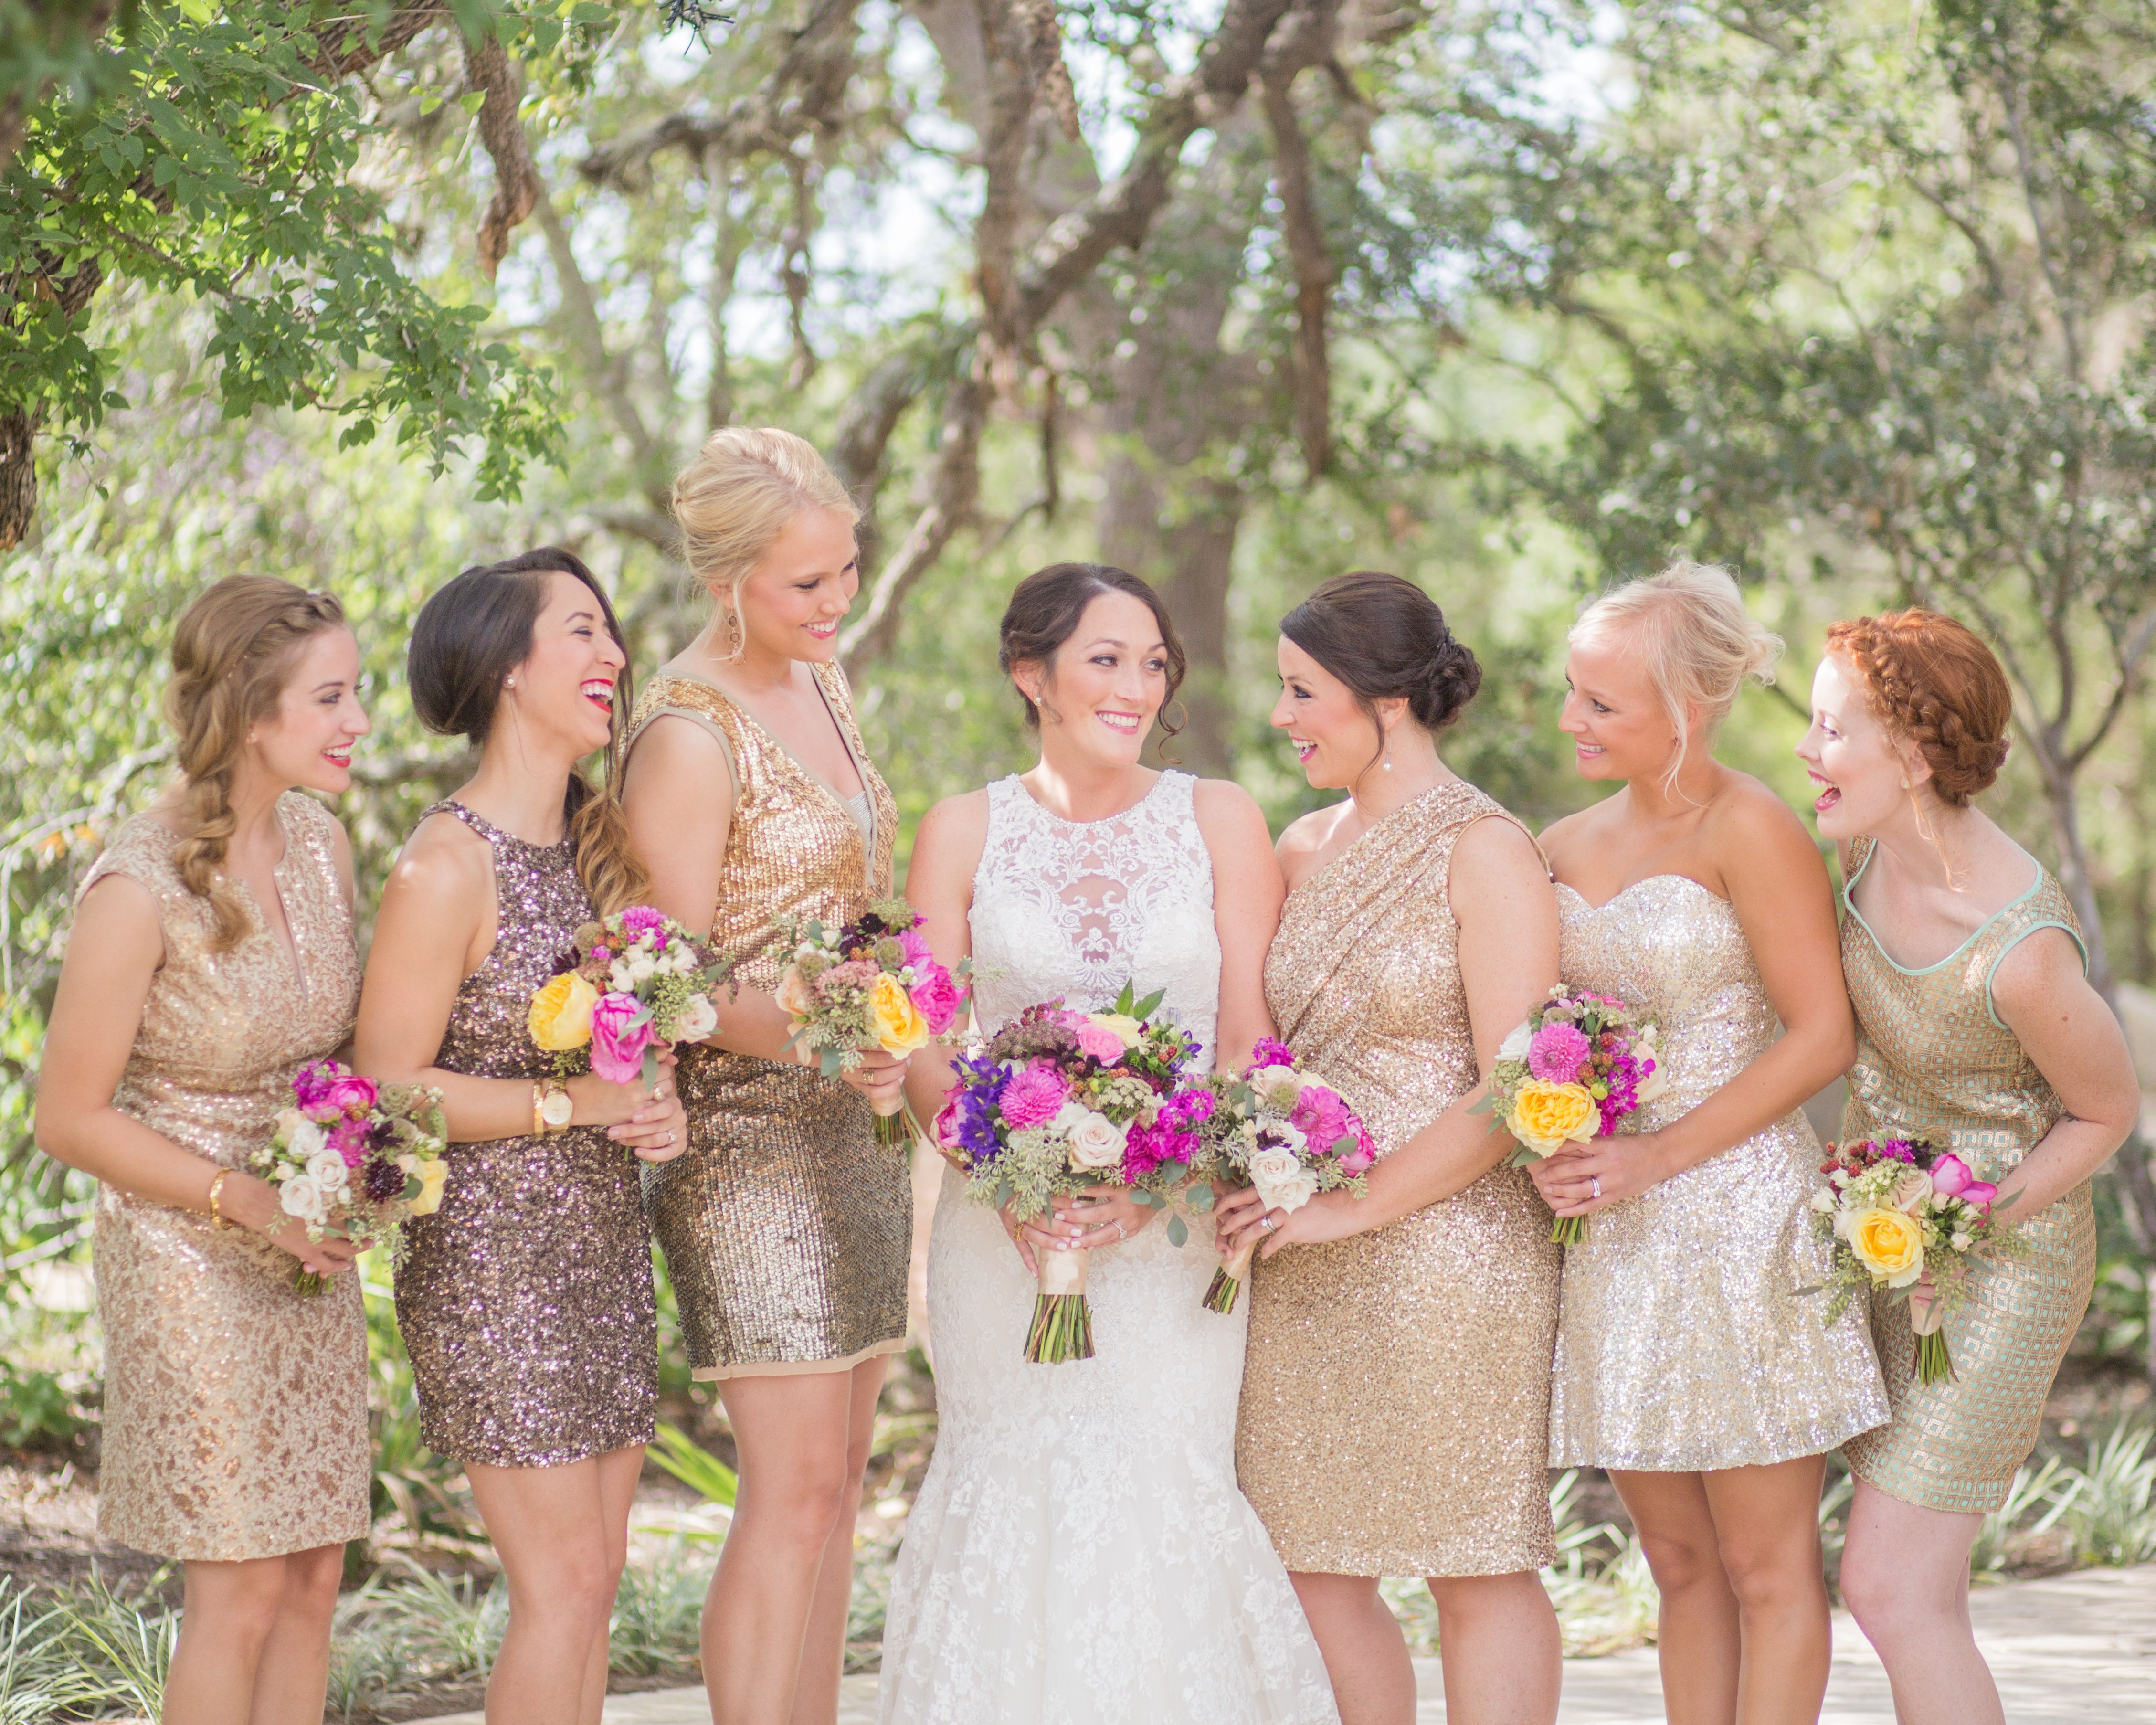 Short gold sequin bridesmaid dresses and pink and yellow bouquets short gold sequin bridesmaid dresses and pink and yellow bouquets ombrellifo Images